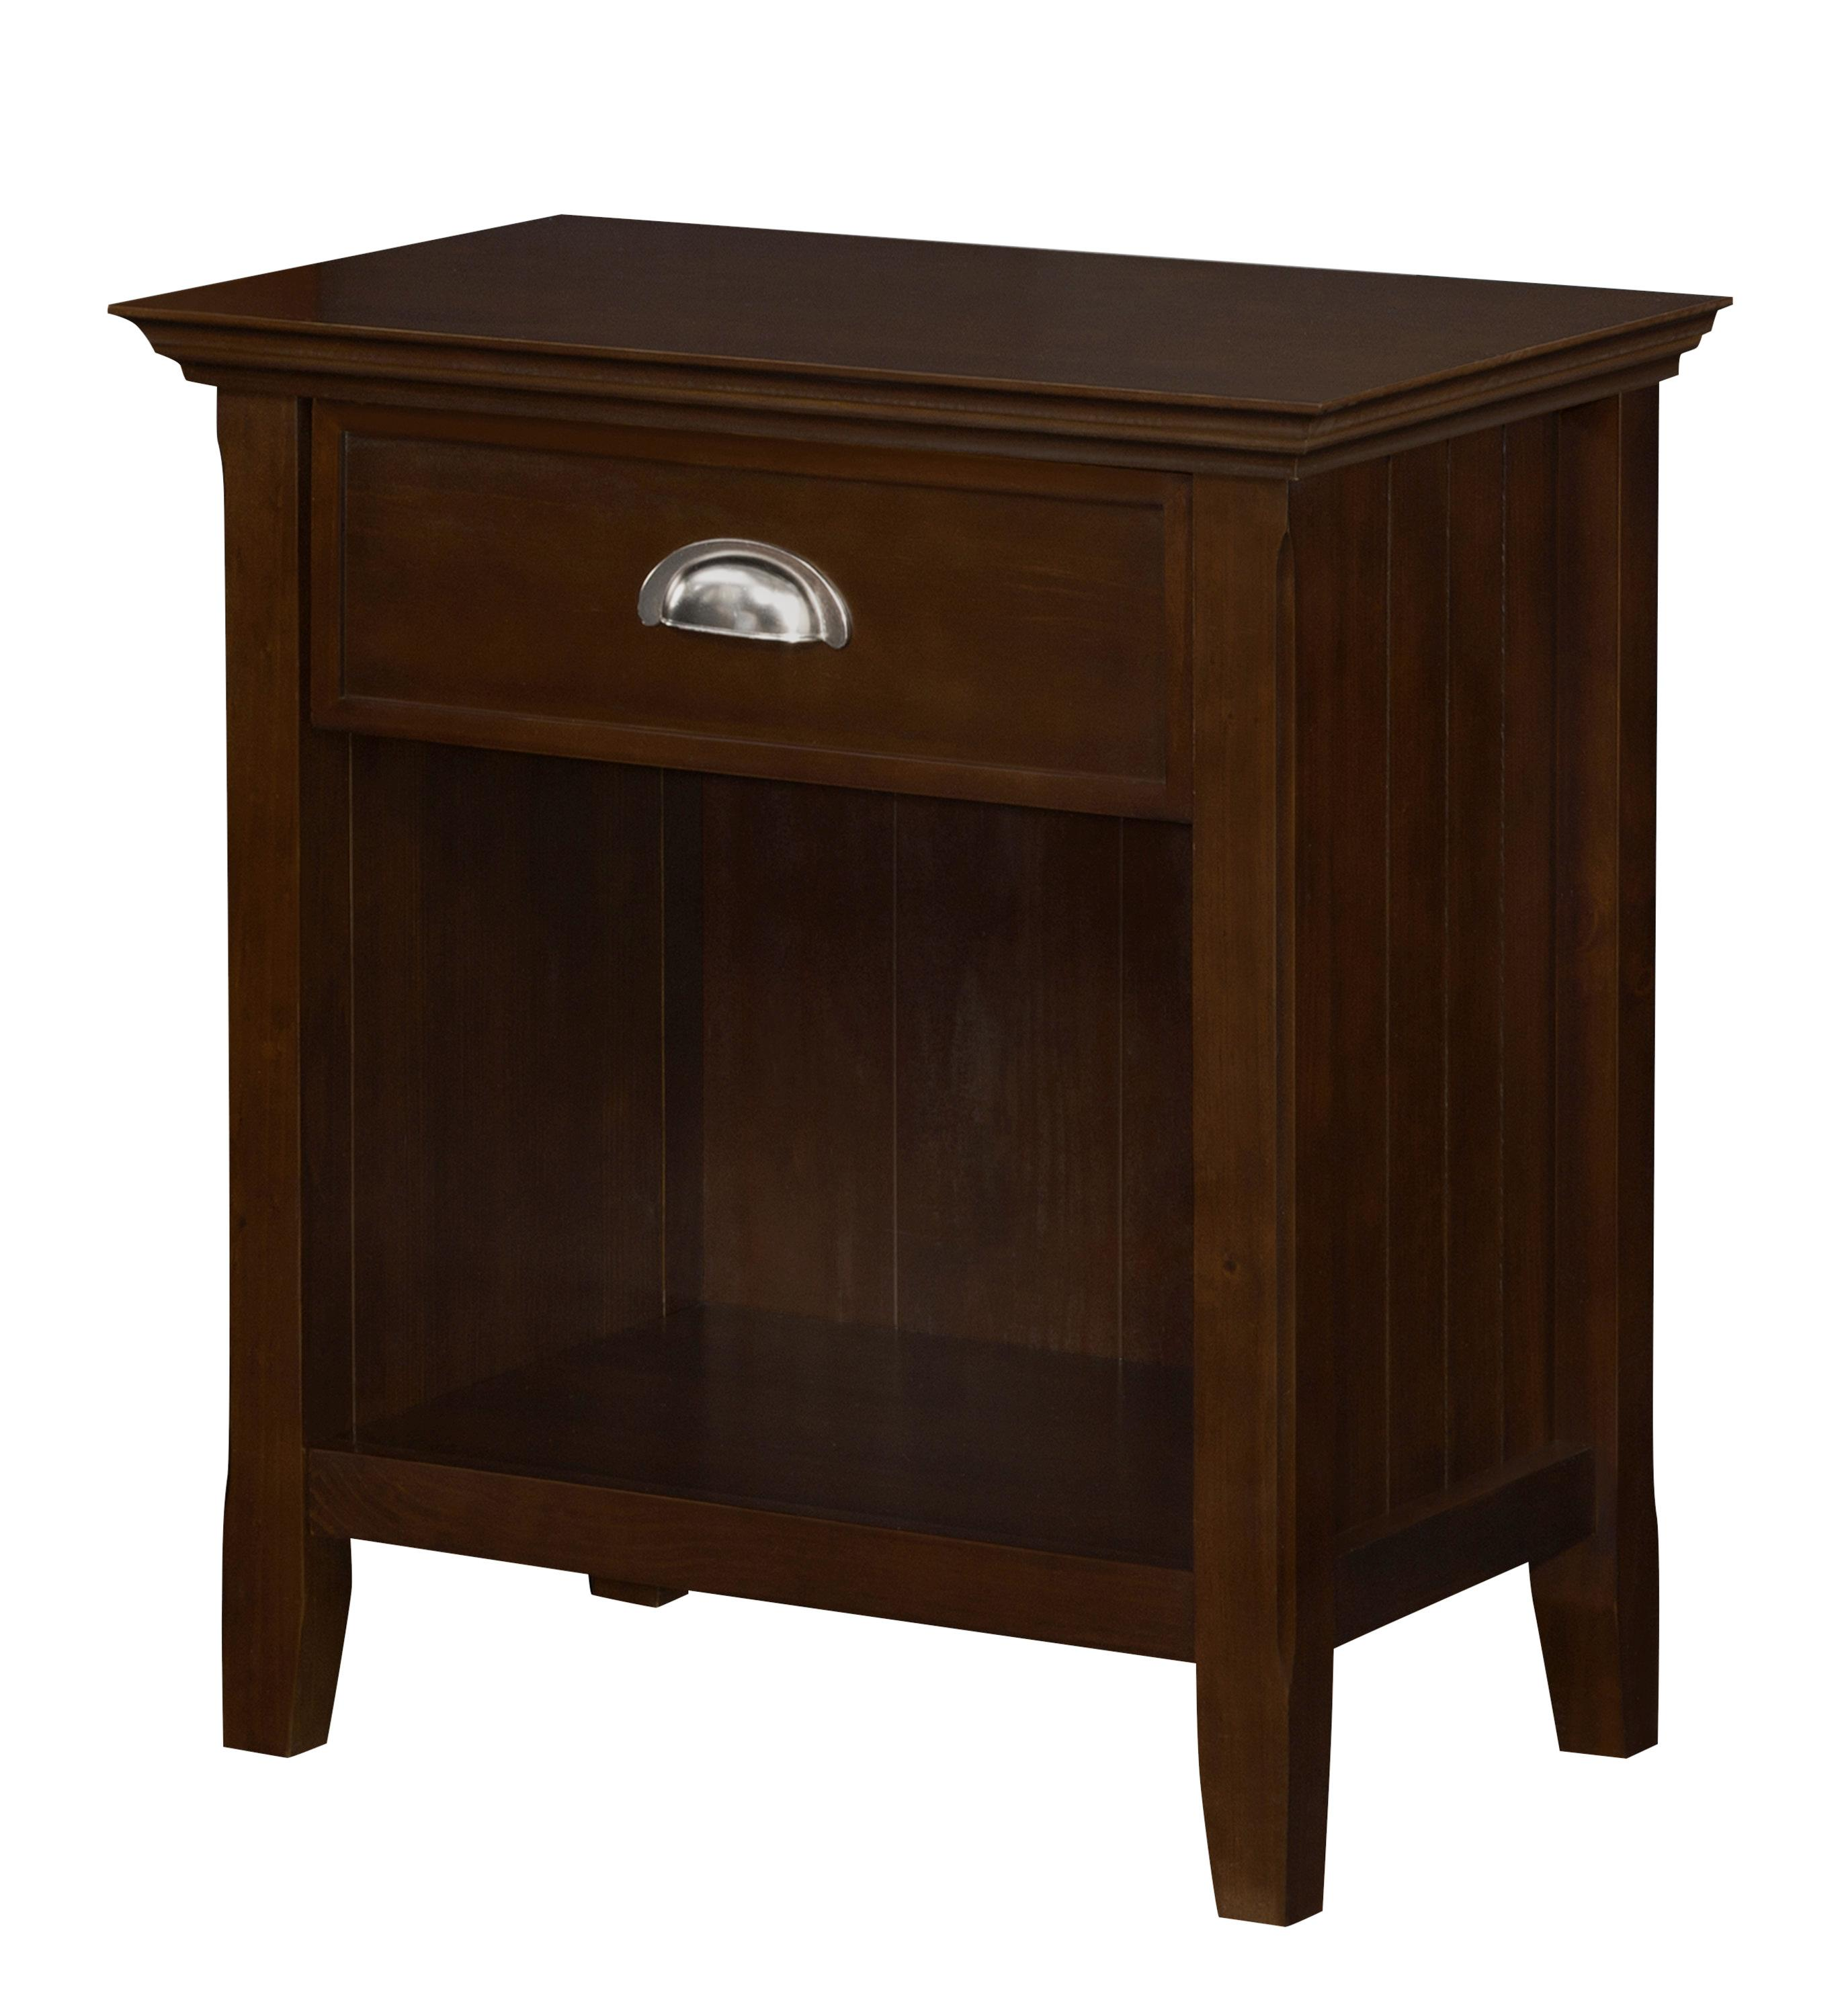 Simpli home acadian solid wood bedside table tobacco brown standard kitchen dining Home furniture on amazon